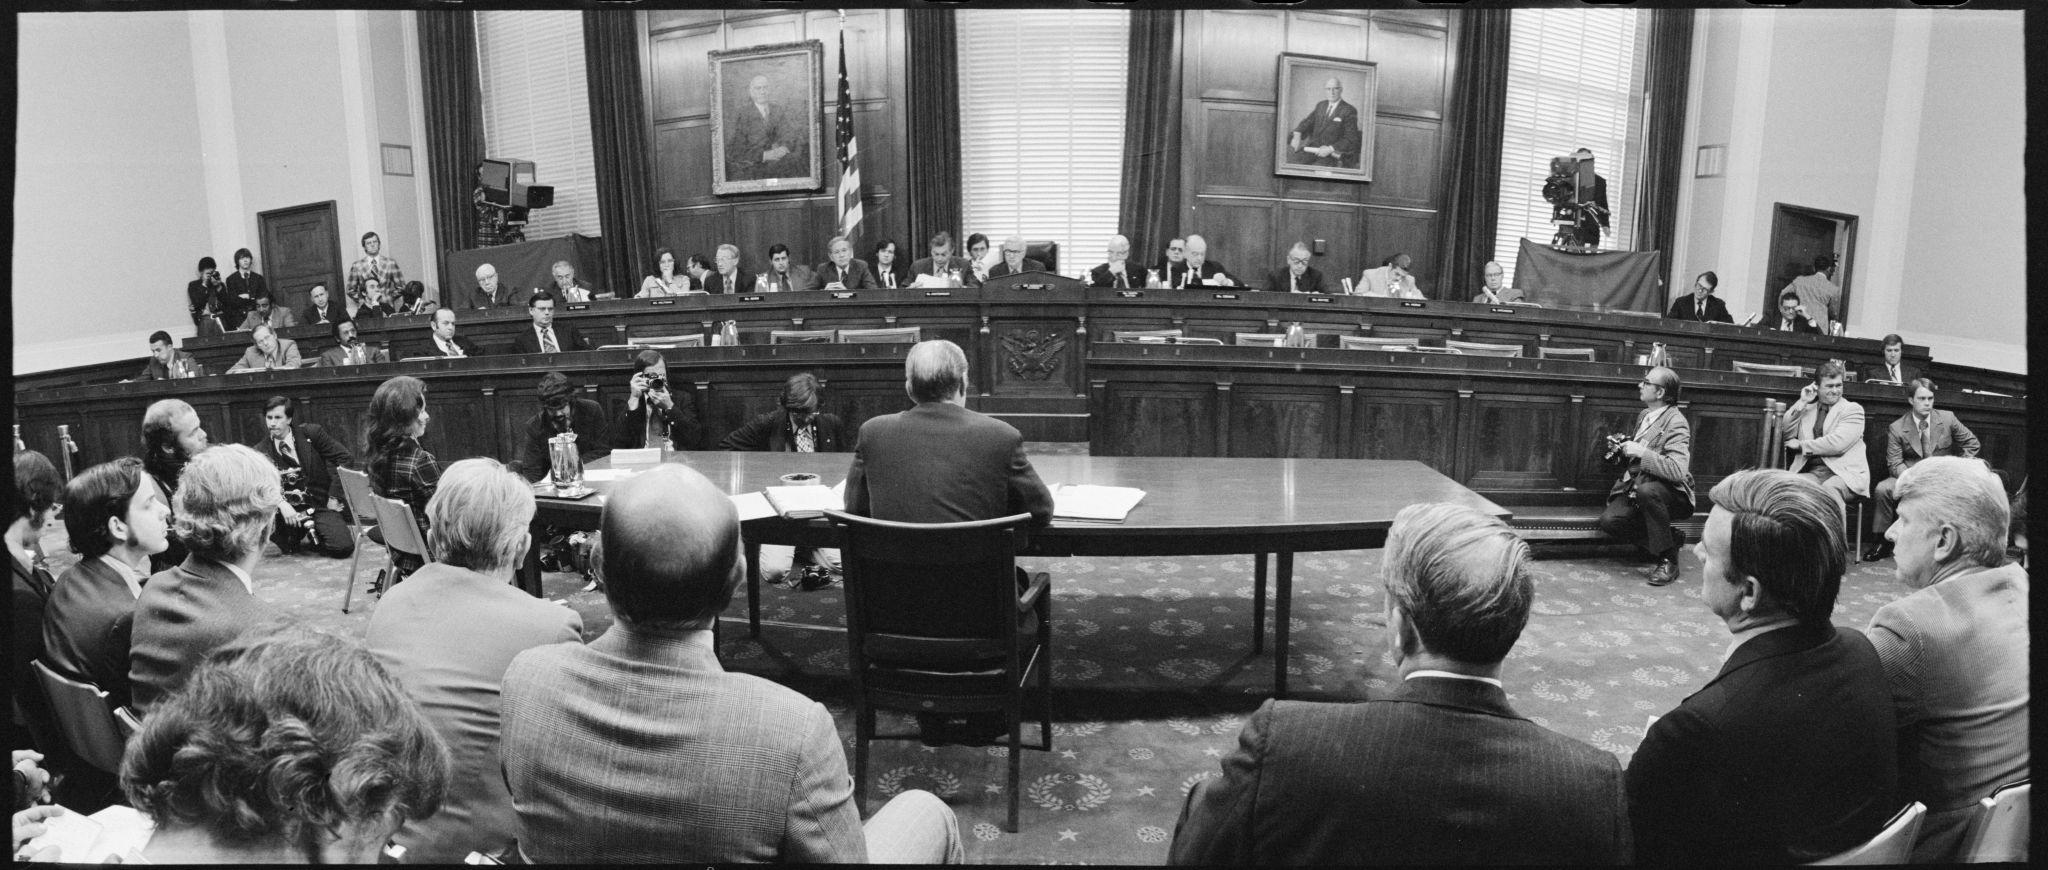 President Ford Testifies Before House Judiciary Committee on Nixon Pardon by Thomas J. O'Halloran, October 1974 (LOC)